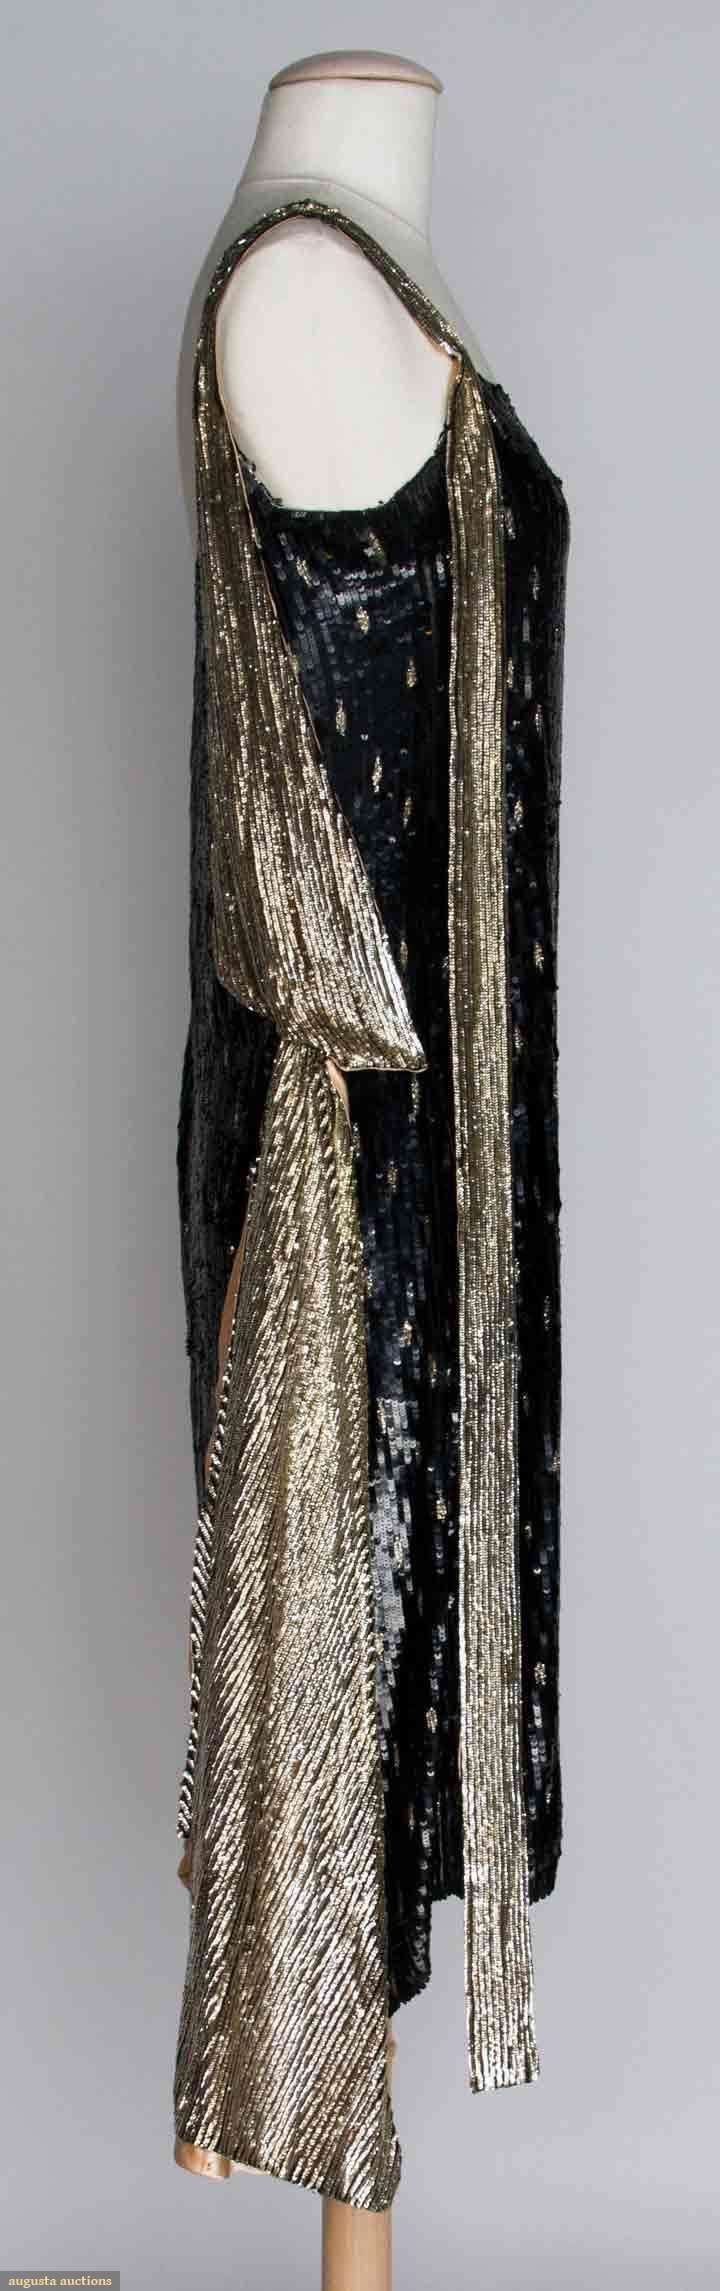 SEQUINED FLAPPER DRESS, 1920s New York City Straight sheath completely covered in small black sequins, inset w/ pattern of small silver dashes, silver sequined scarf on left shoulder. Sideway